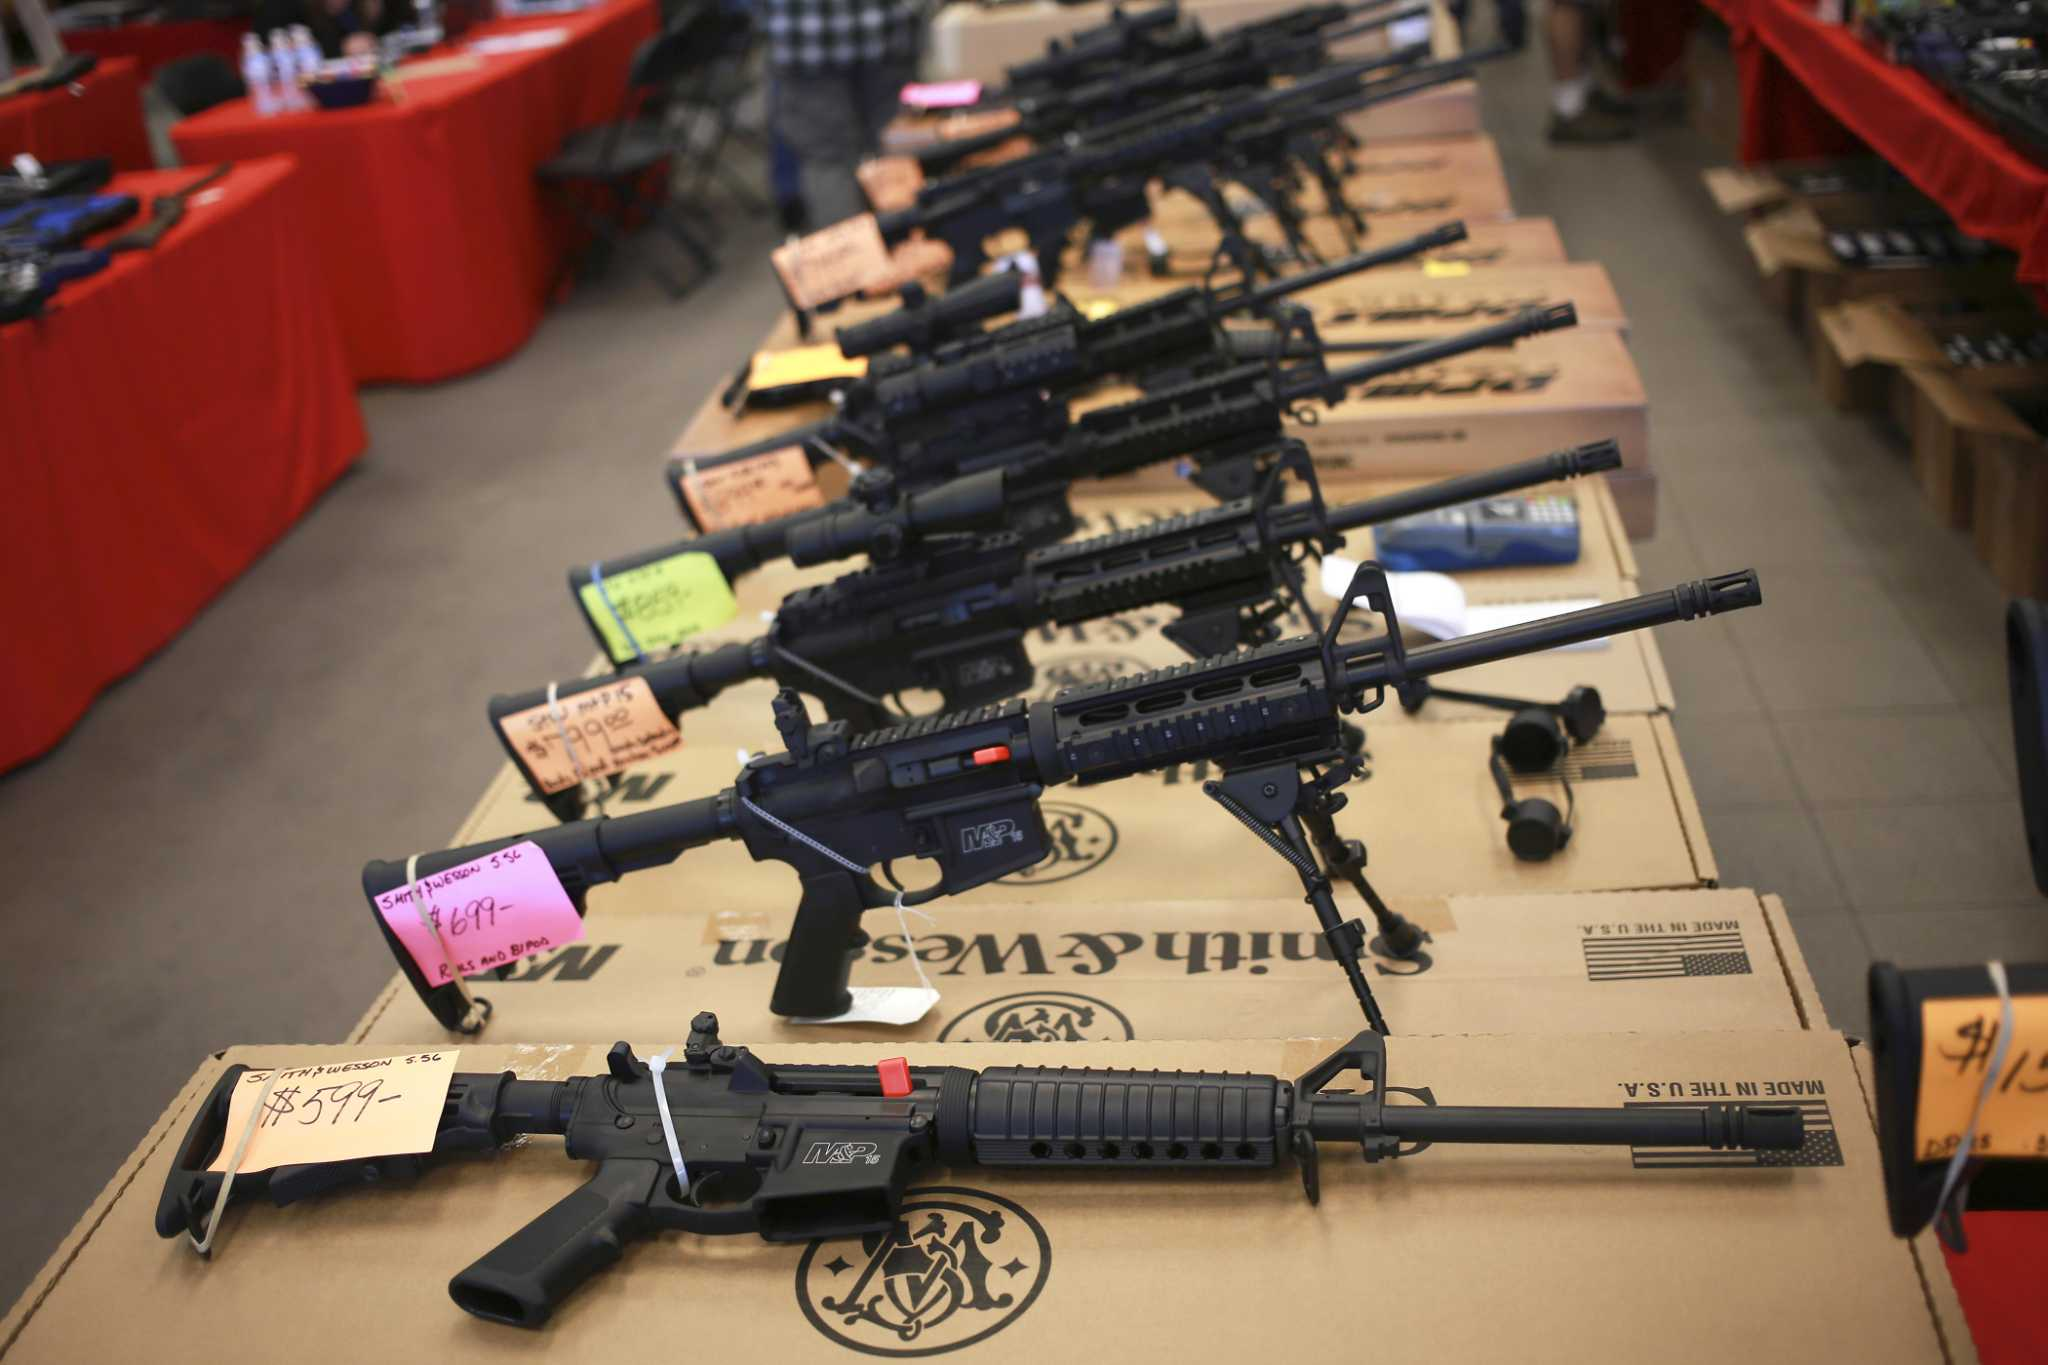 Gun store's 'Beto Special' sells-out AR-15 rifles in four hours, following Dem's pledge to ban them